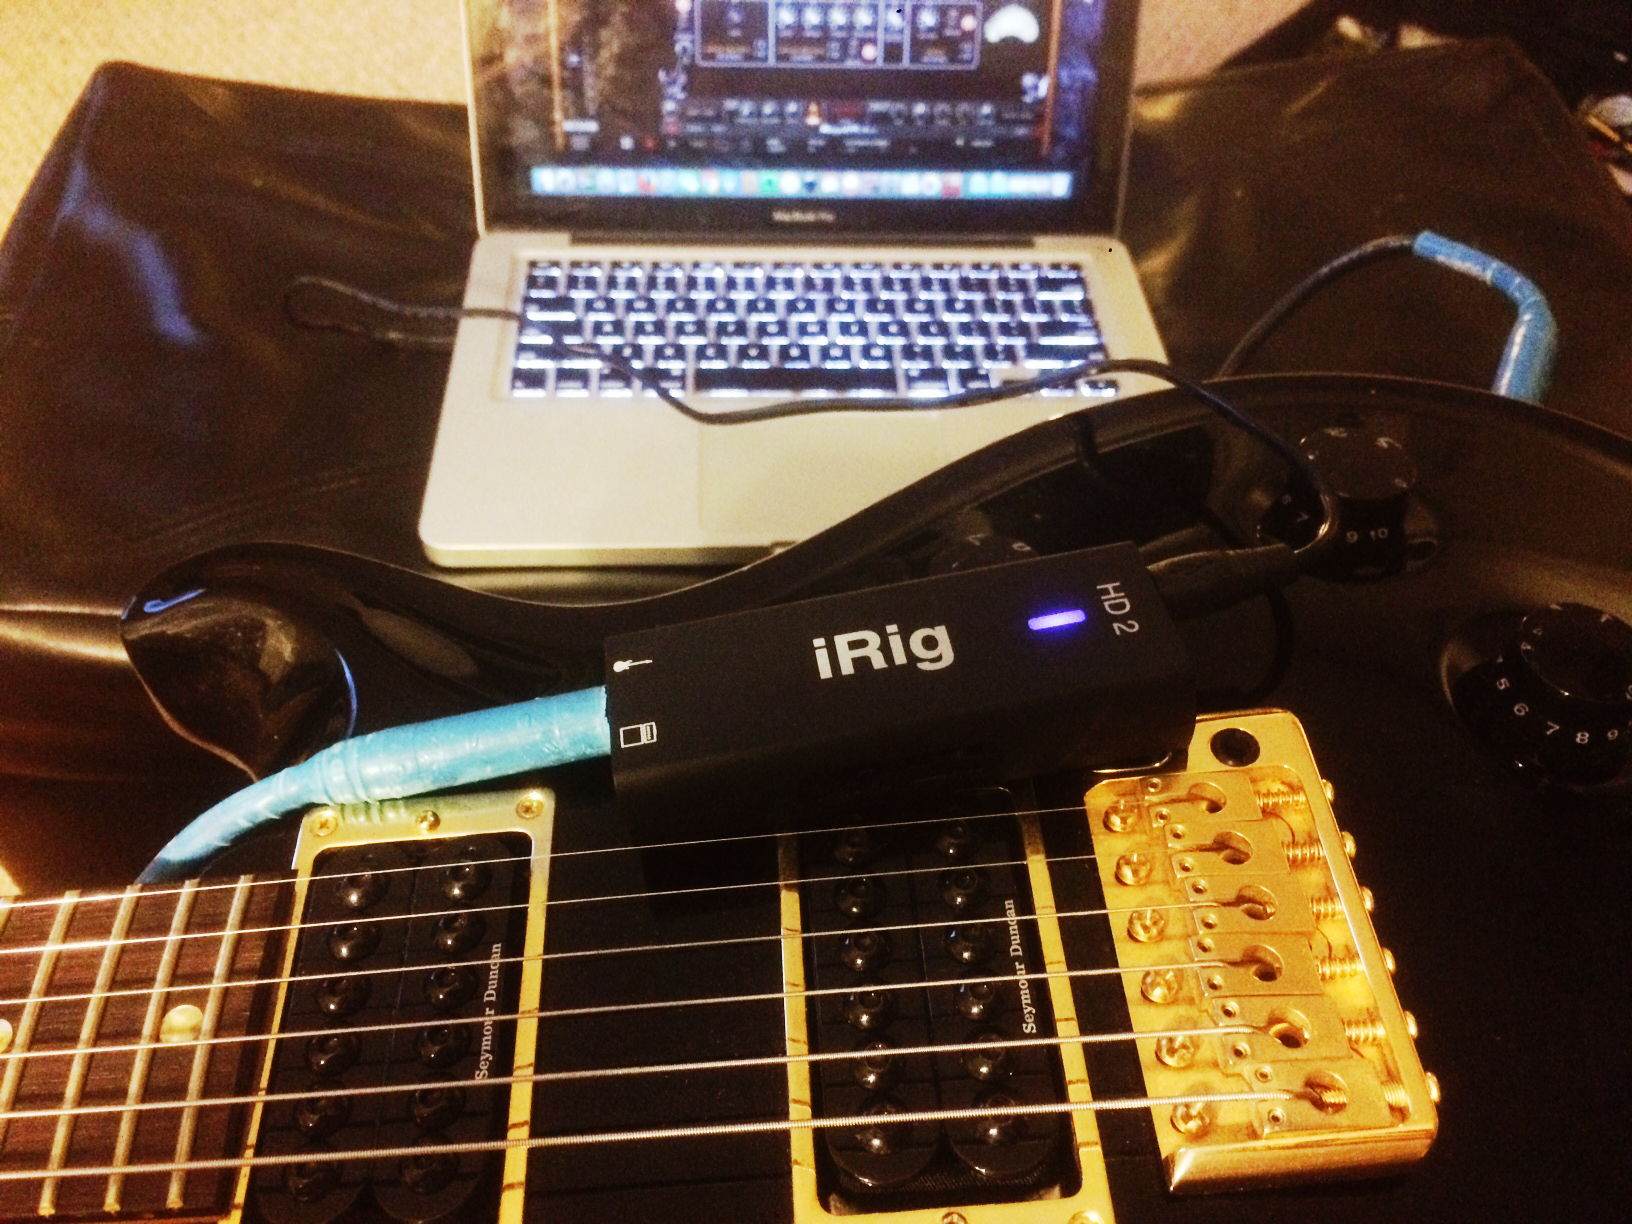 Bought And Unboxed Irig Hd 2 Review And Setup Guide